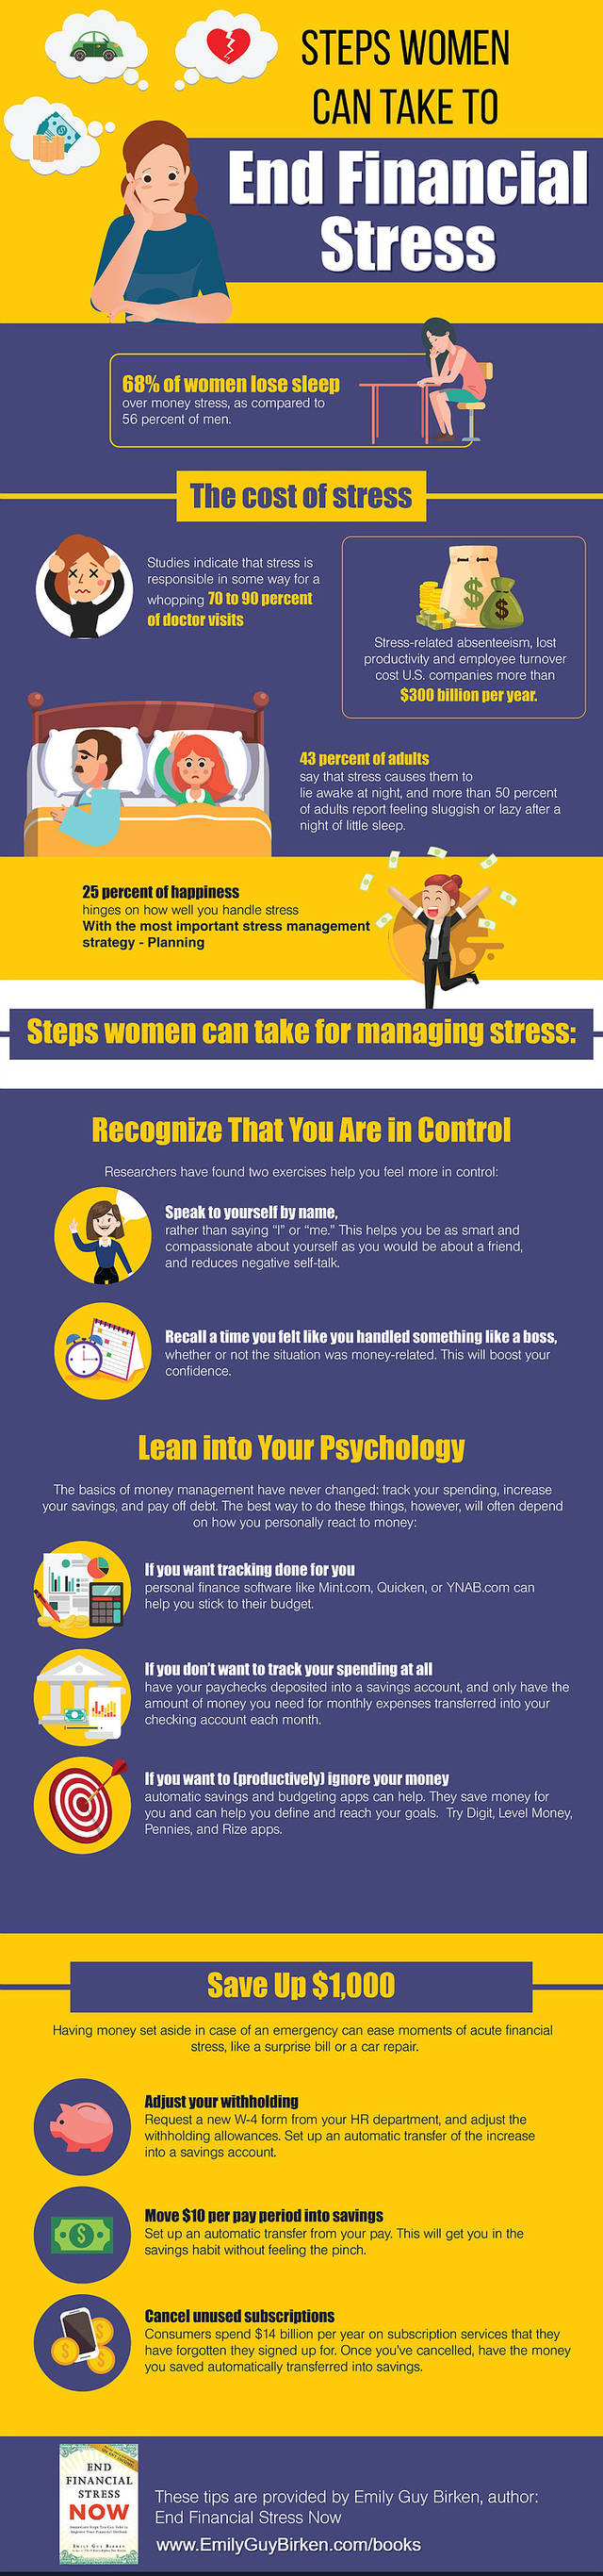 Steps to end financial stress infographic